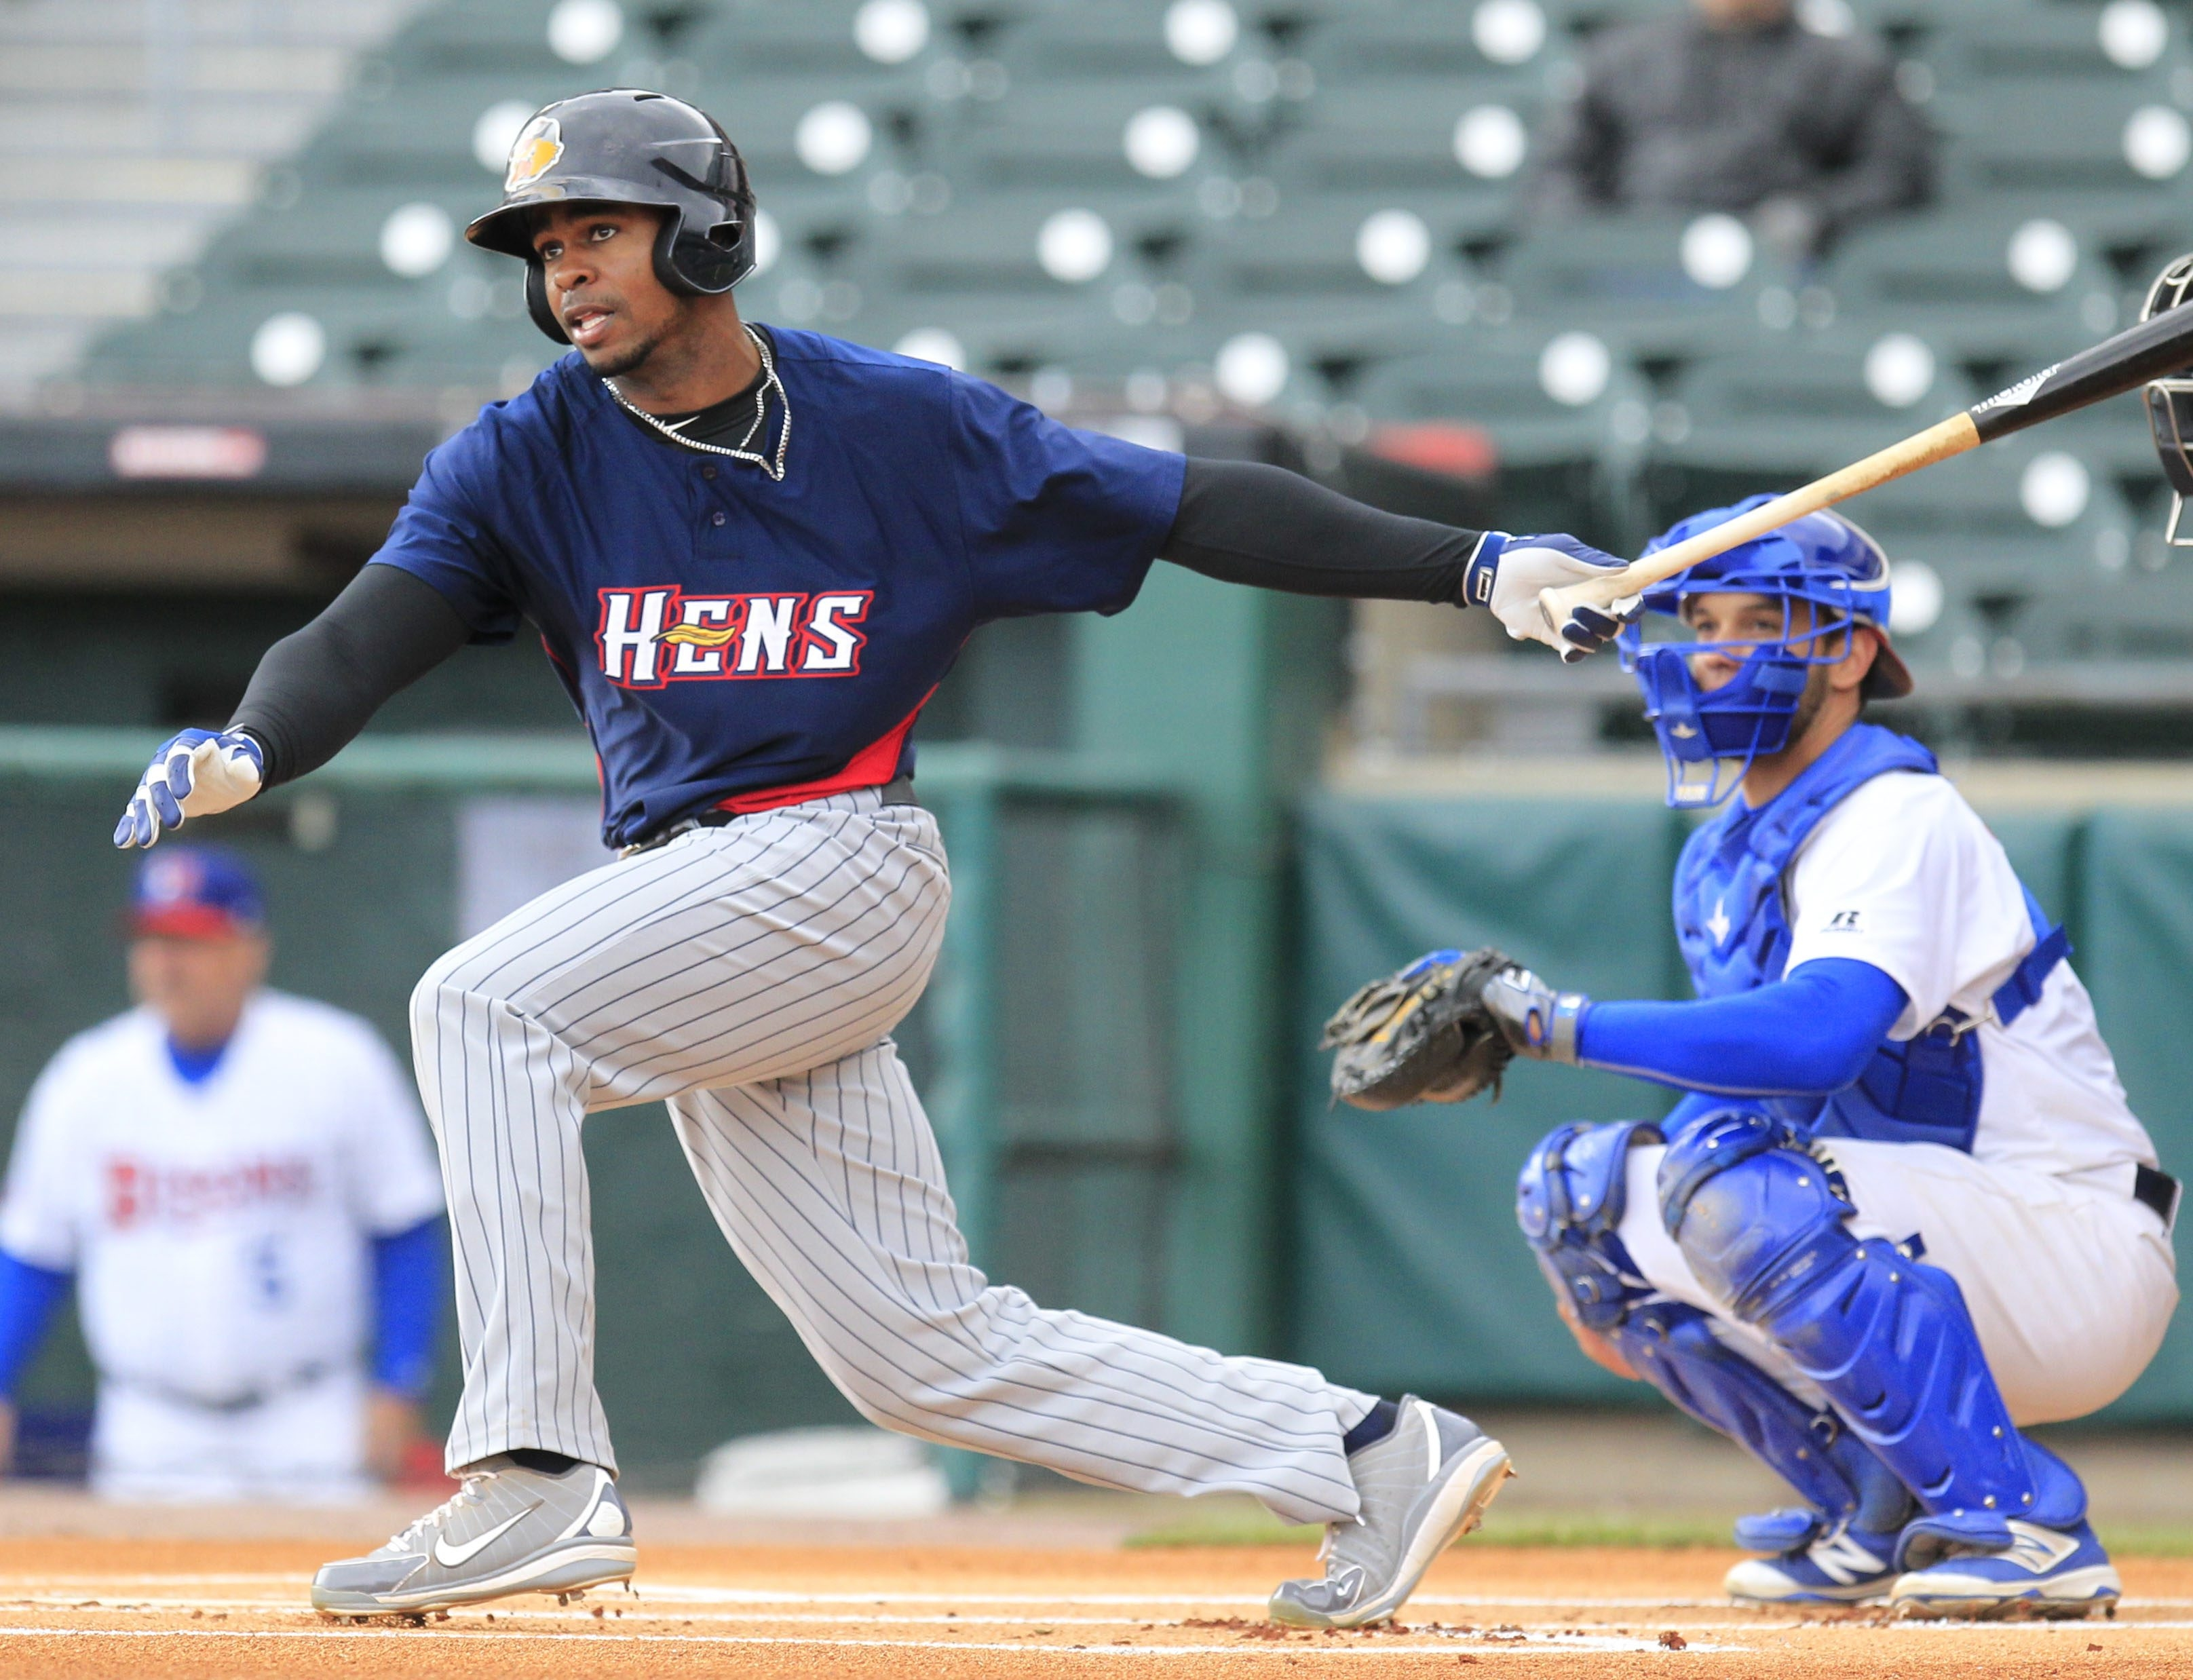 Toledo Mud Hens Wynton Bernard leads the game off hitting a double against the Buffalo Bisons at Coca-Cola field on Monday, May 16, 2016. (Harry Scull Jr./Buffalo News)